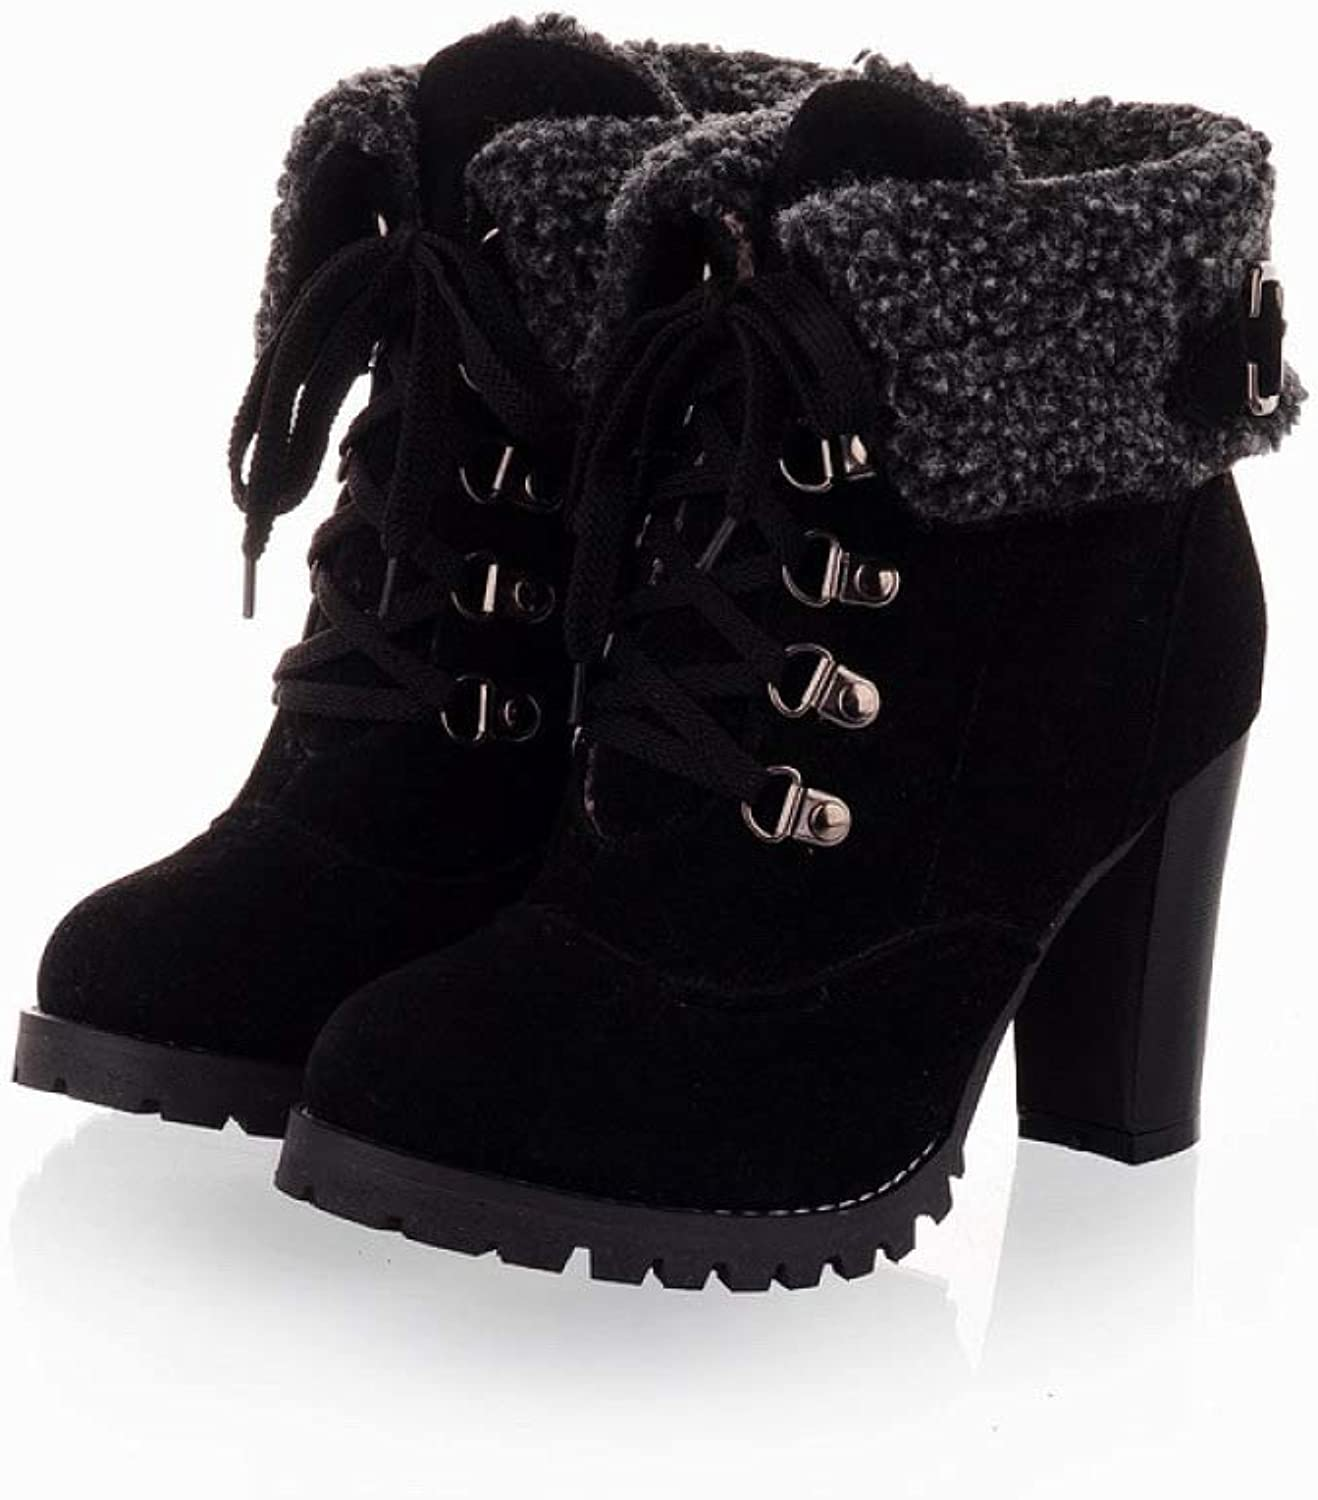 Women's Martin Boots, High-Heeled Matte Suede Ankle Boots, Large Size Lace Up Snow shoes,Black-CN39